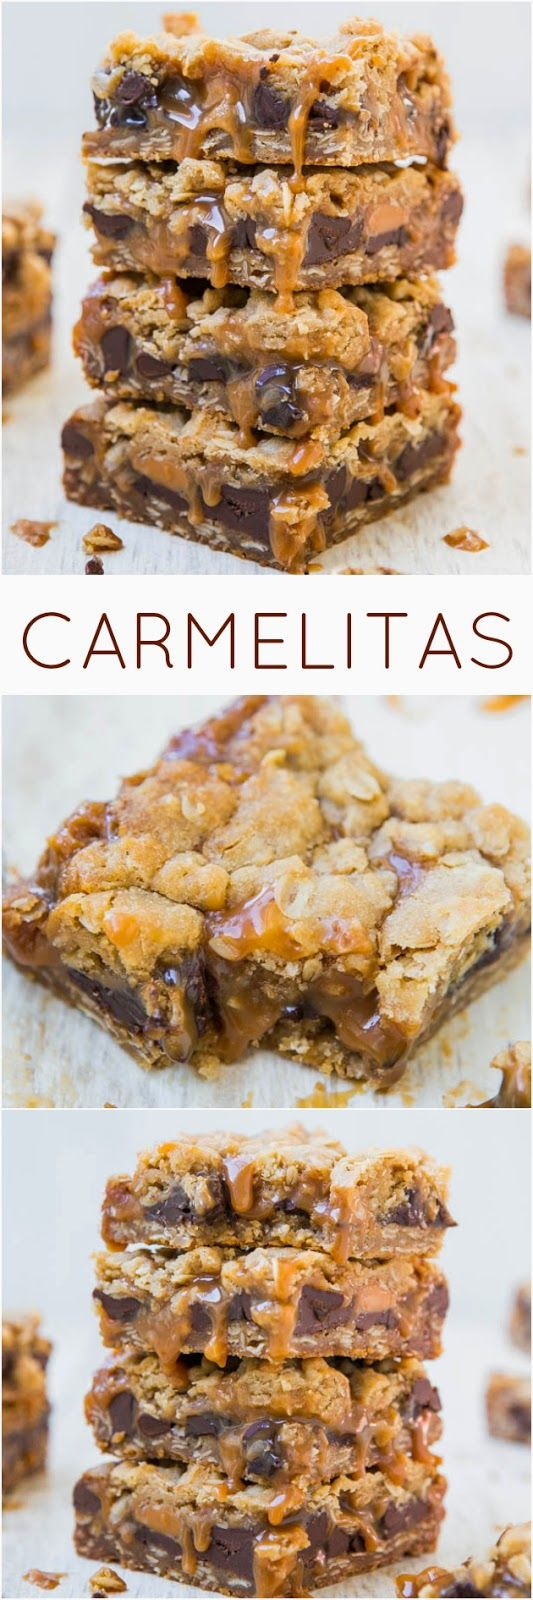 Carmelitas | These look so gooey and delicious! I always get a carmelita bar when I go to Whole Foods.